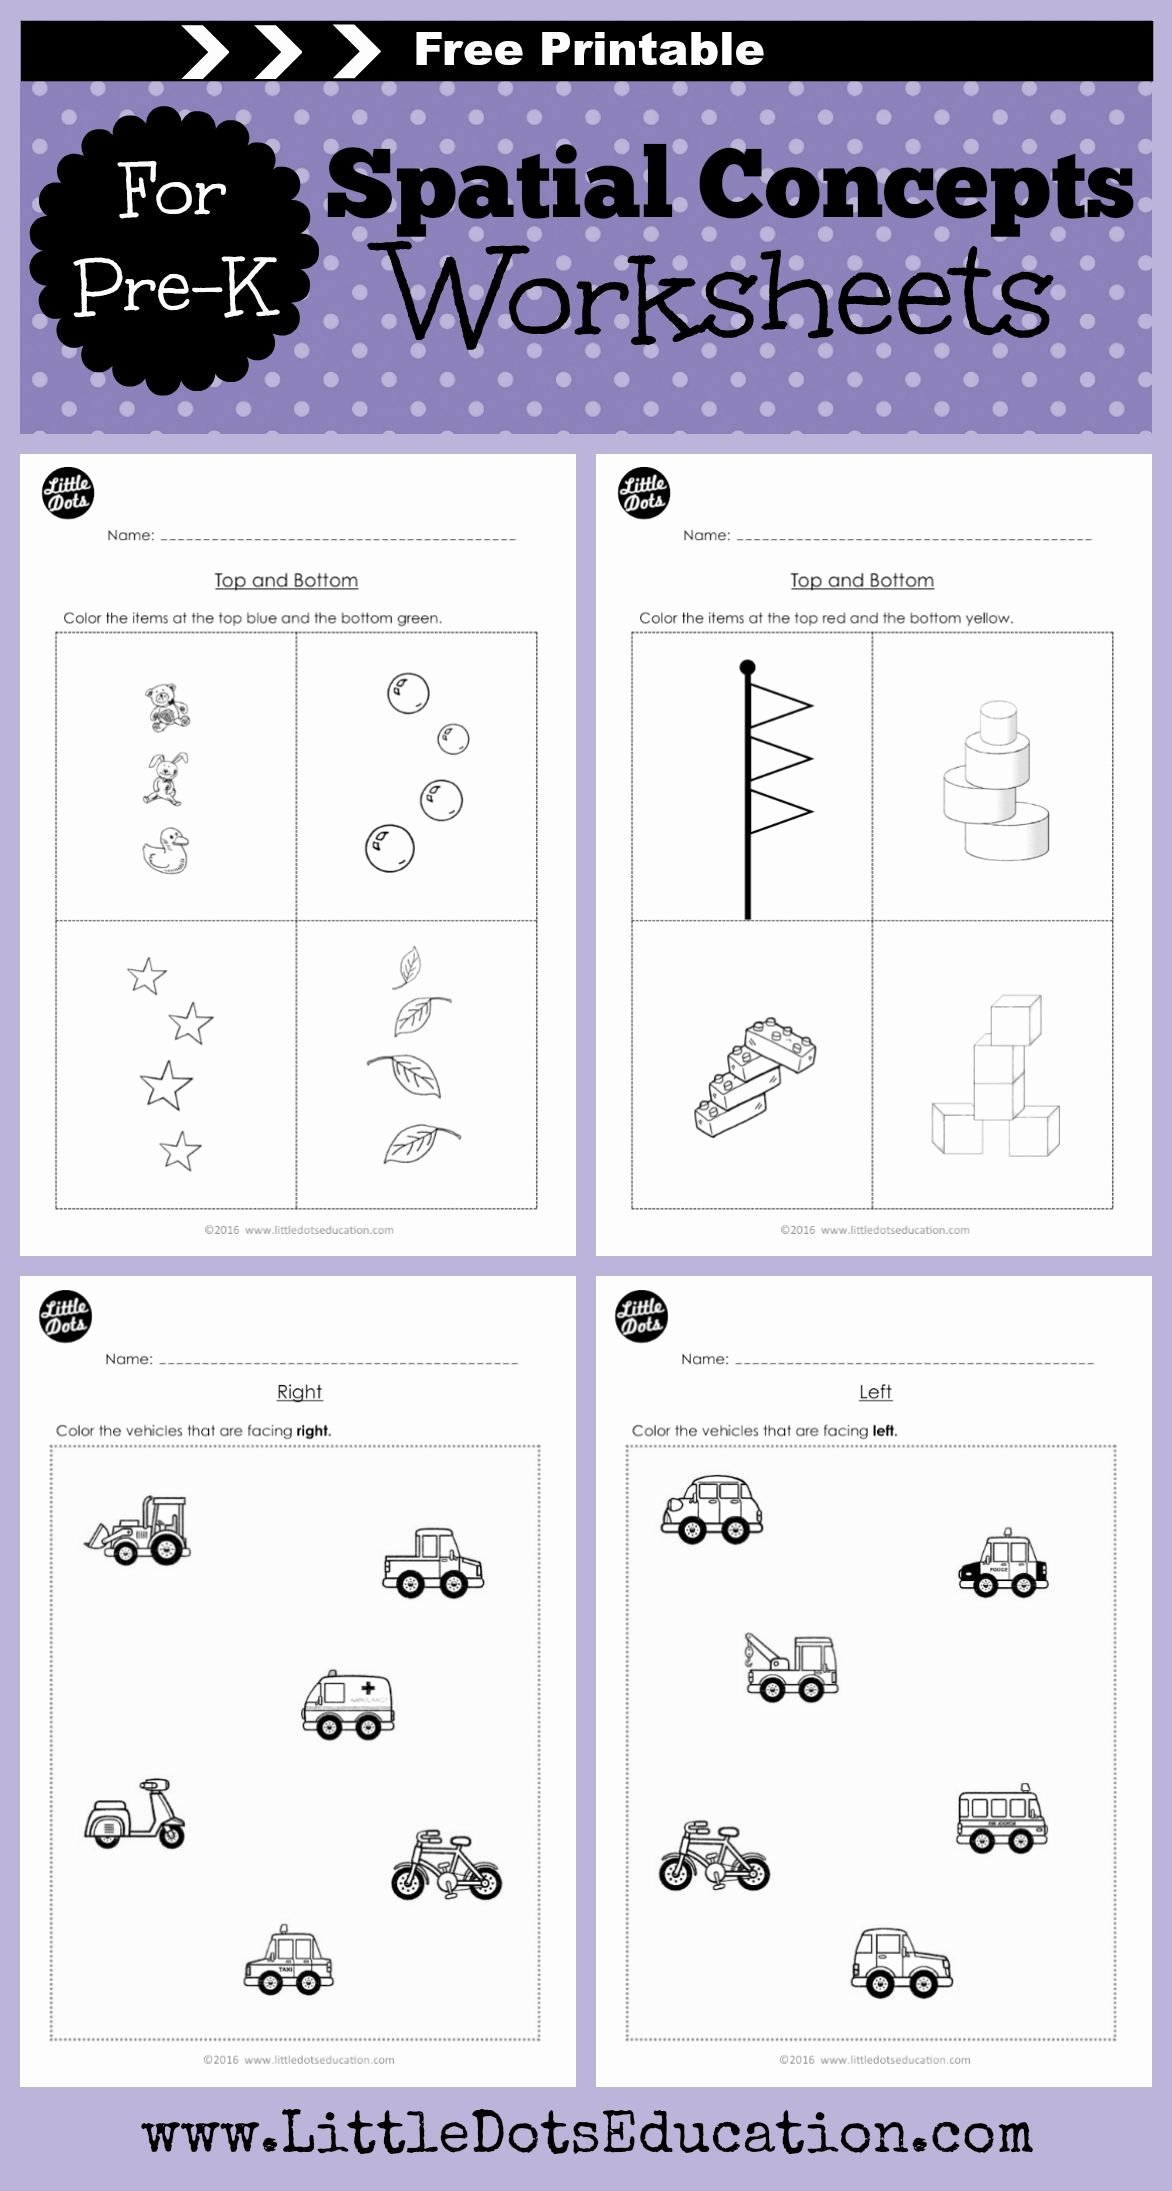 Concept Worksheets for Preschoolers Lovely Pre K Spatial Concepts Worksheets and Activities